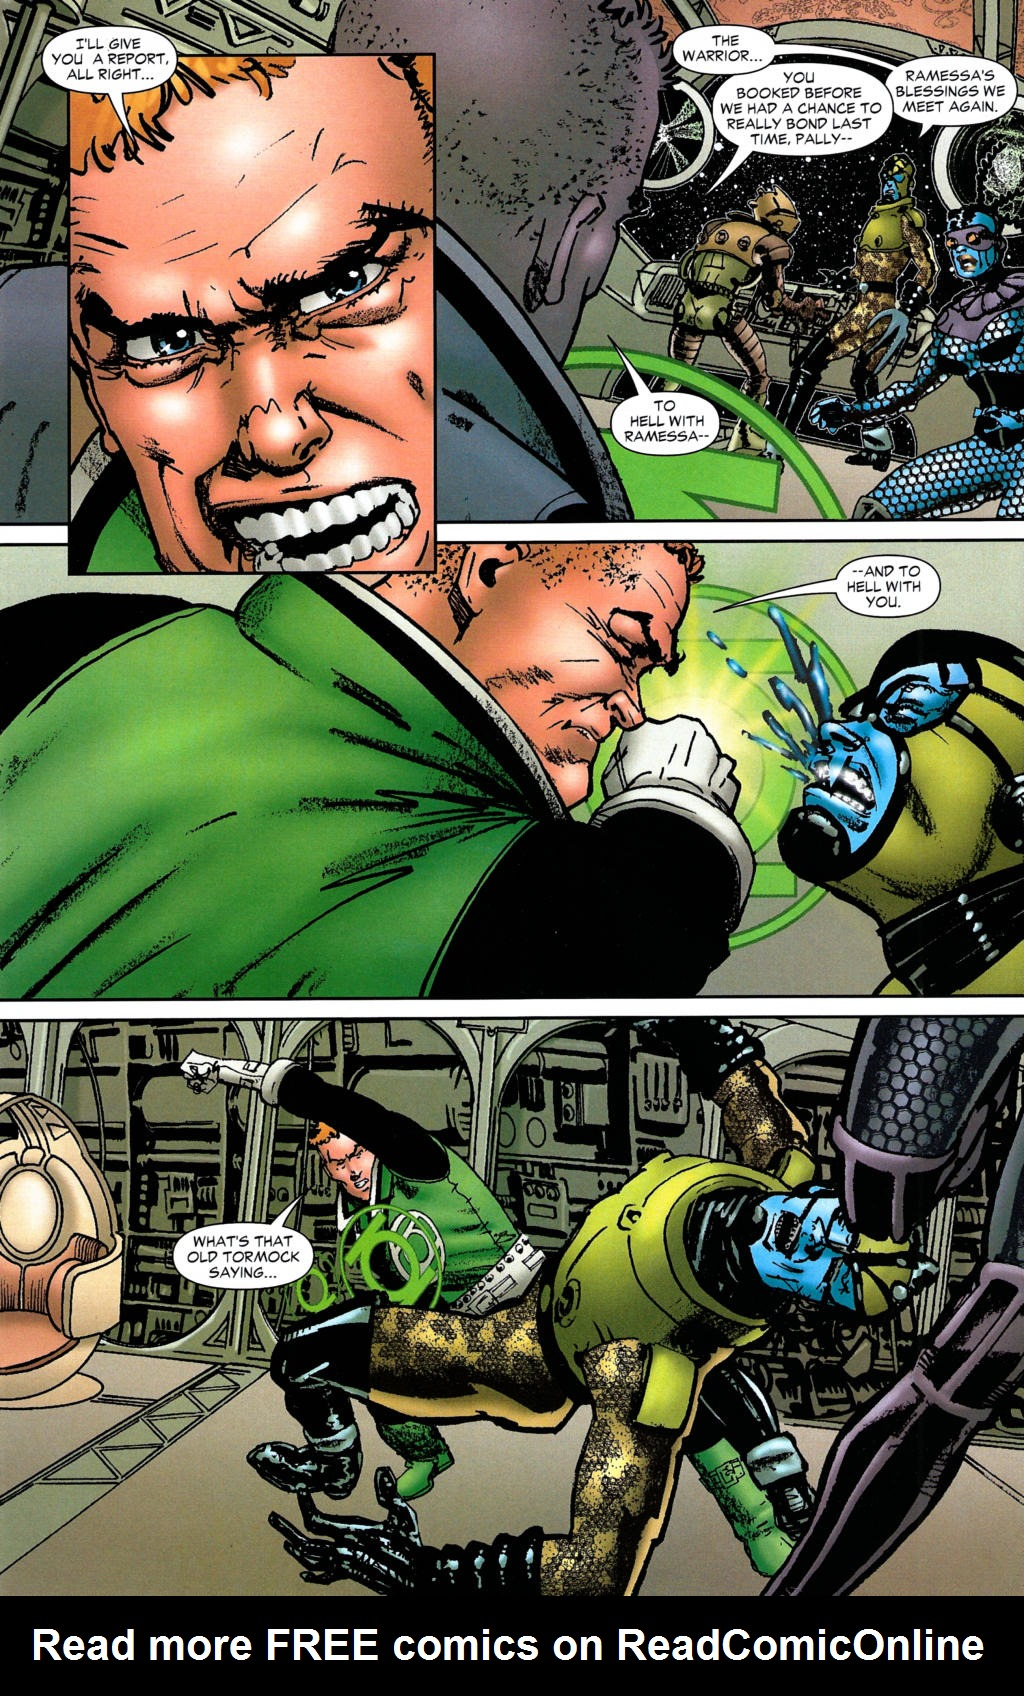 Read online Guy Gardner: Collateral Damage comic -  Issue #2 - 27